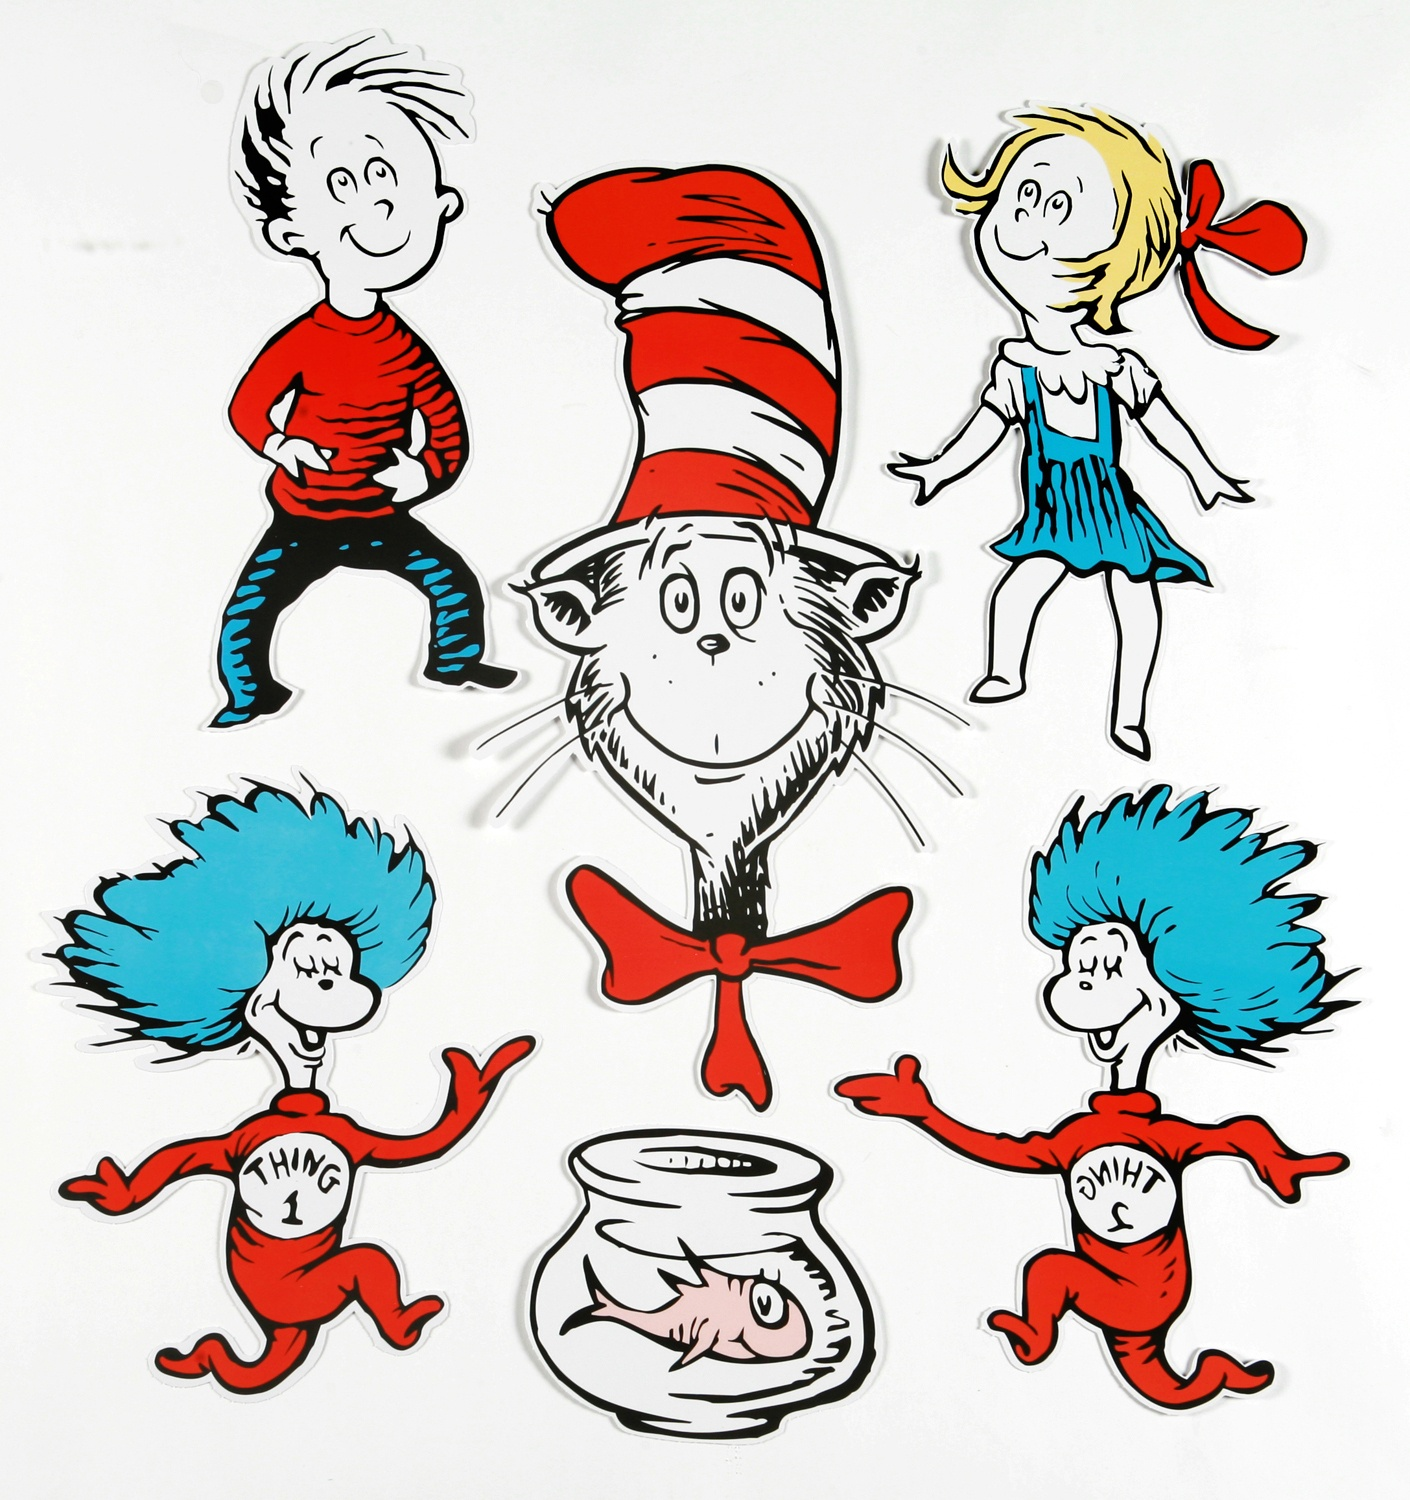 Pictures Of Dr Seuss Characters | Free Download Best Pictures Of Dr - Free Printable Pictures Of Dr Seuss Characters